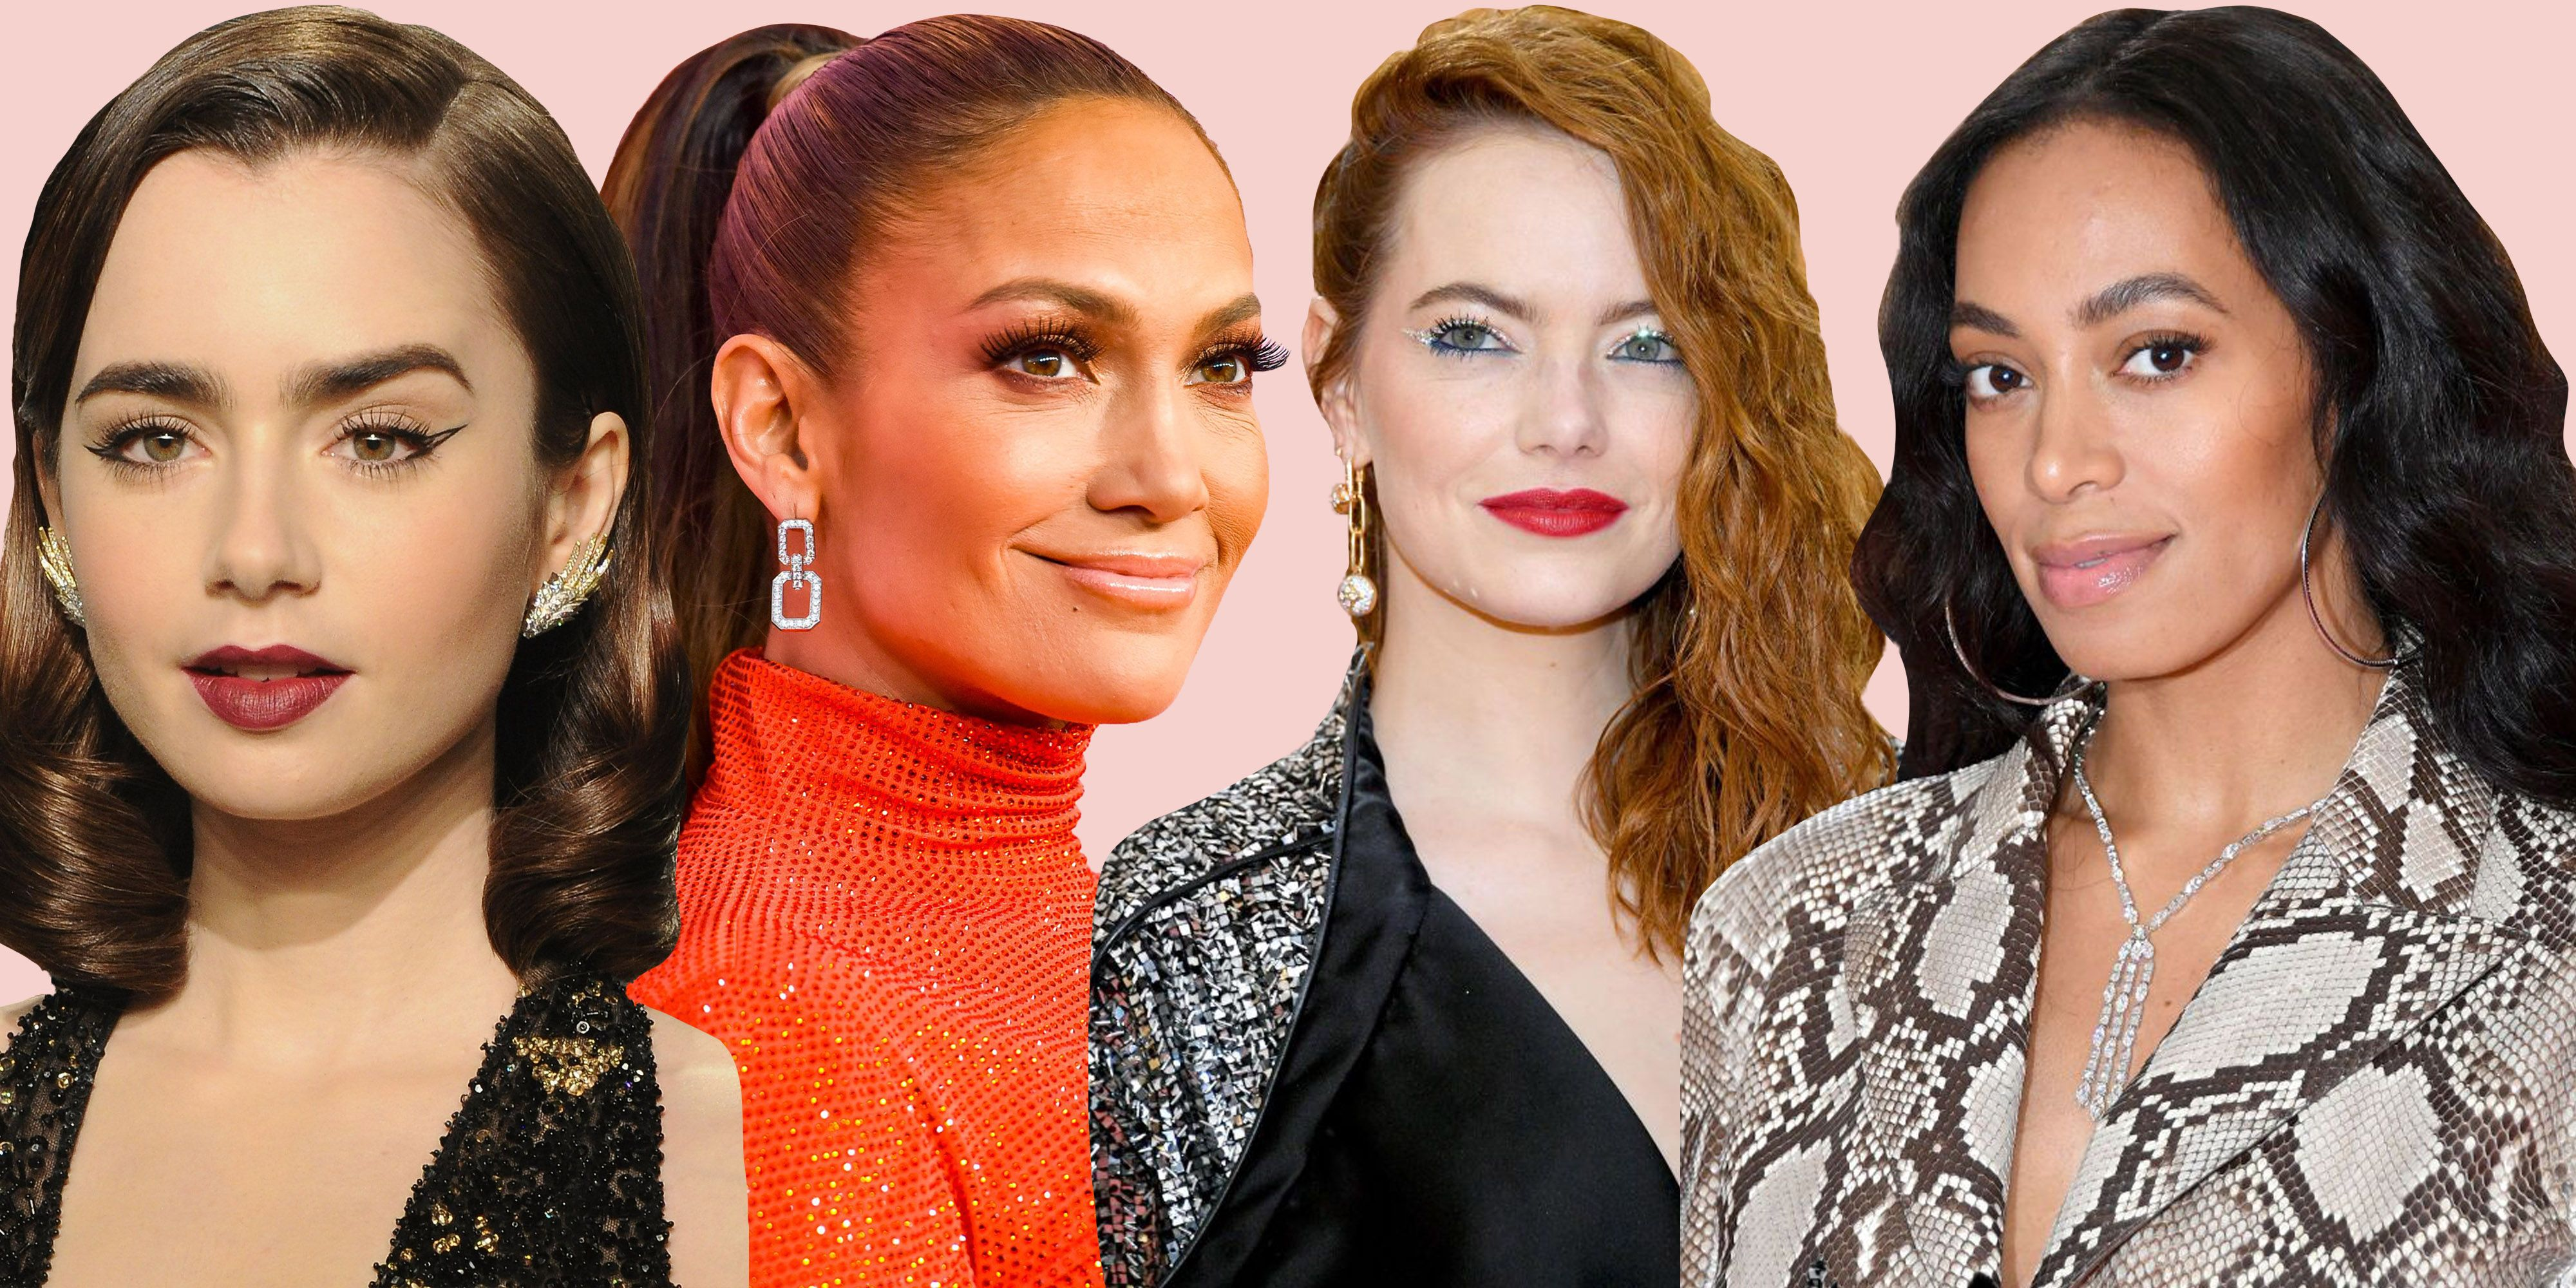 20 Fall Makeup Trends to Freshen Up Your Autumn Look